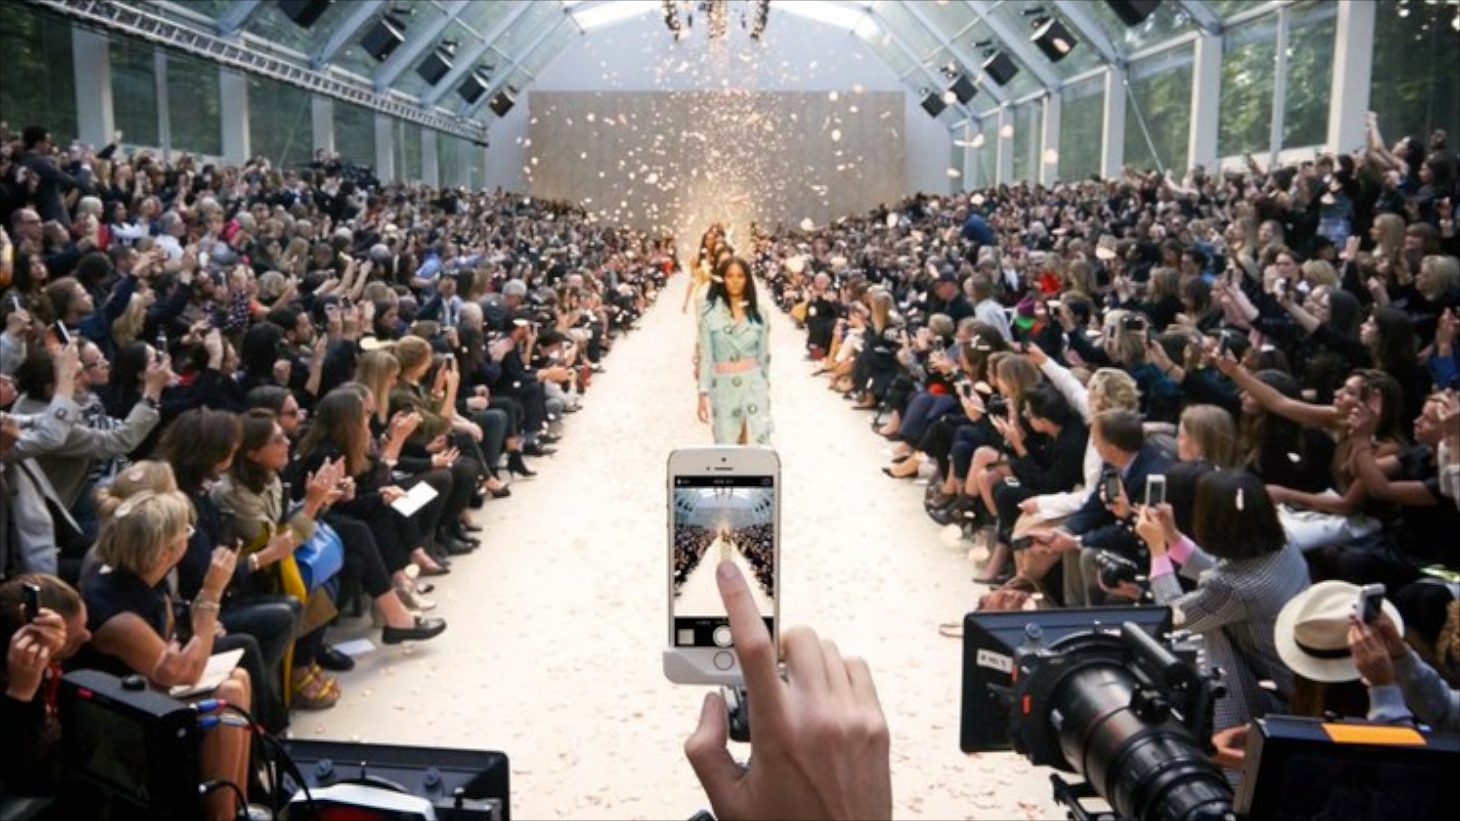 Burberry films its S/S 2014 show using the iPhone 5S